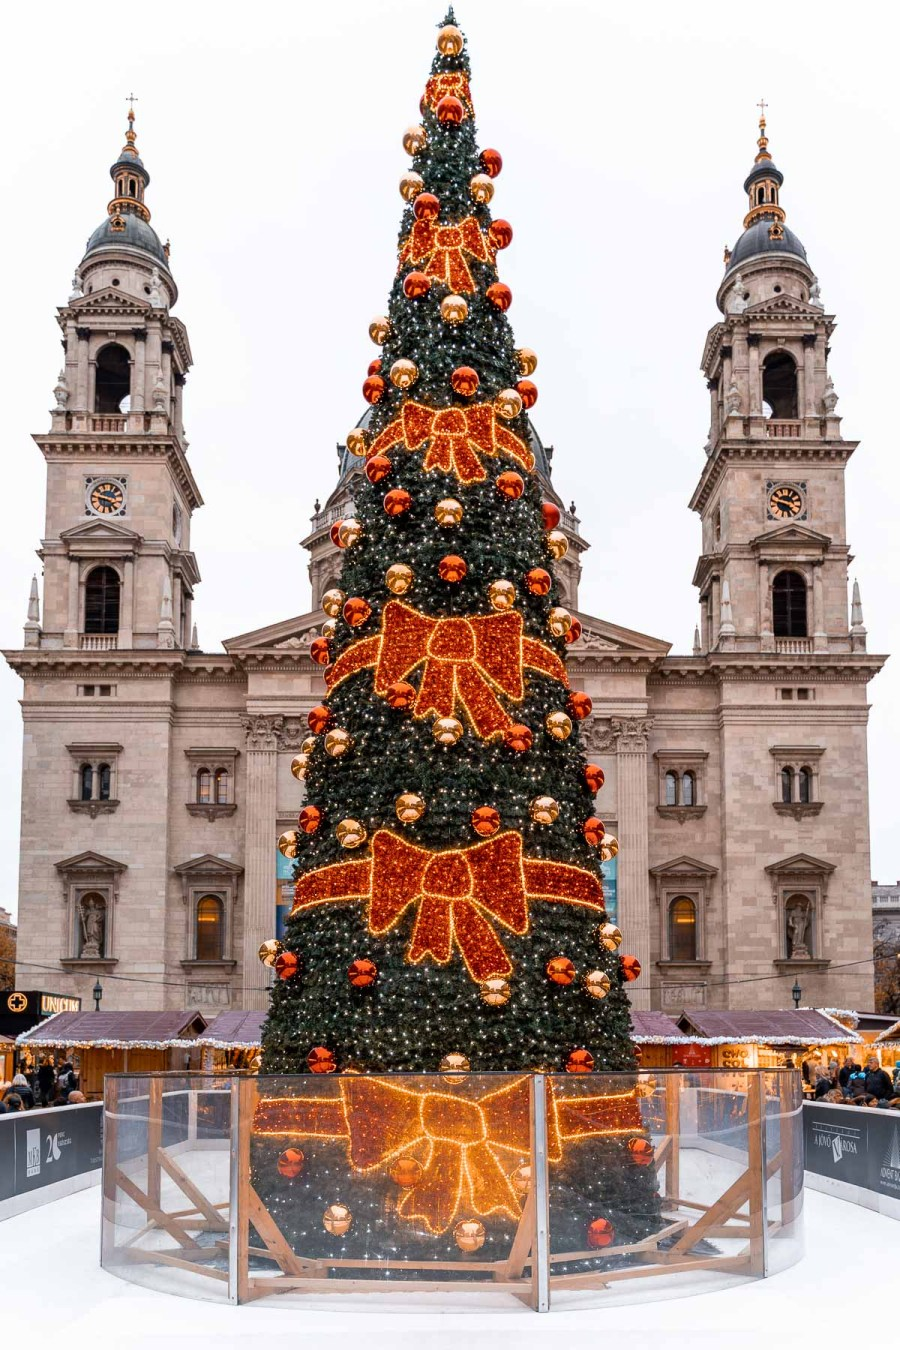 Christmas tree in front of St. Stephen's Basilica in Budapest